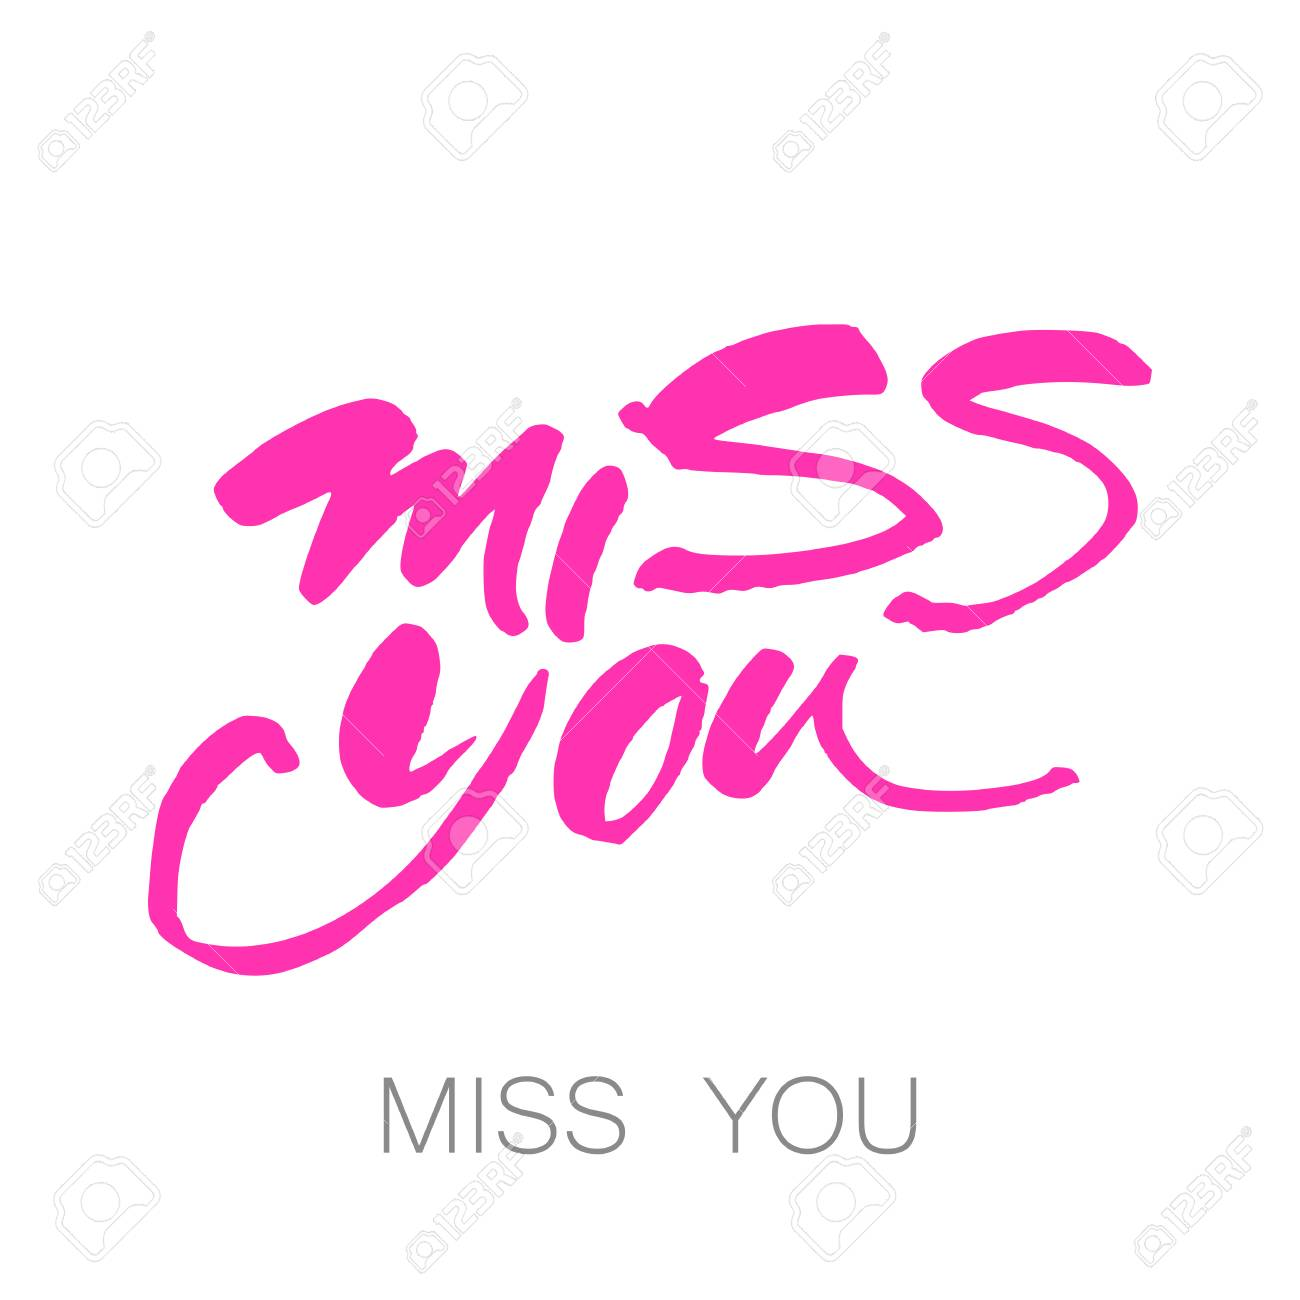 Miss you greeting card hand drawn lettering design vector miss you greeting card hand drawn lettering design vector illustration stock vector m4hsunfo